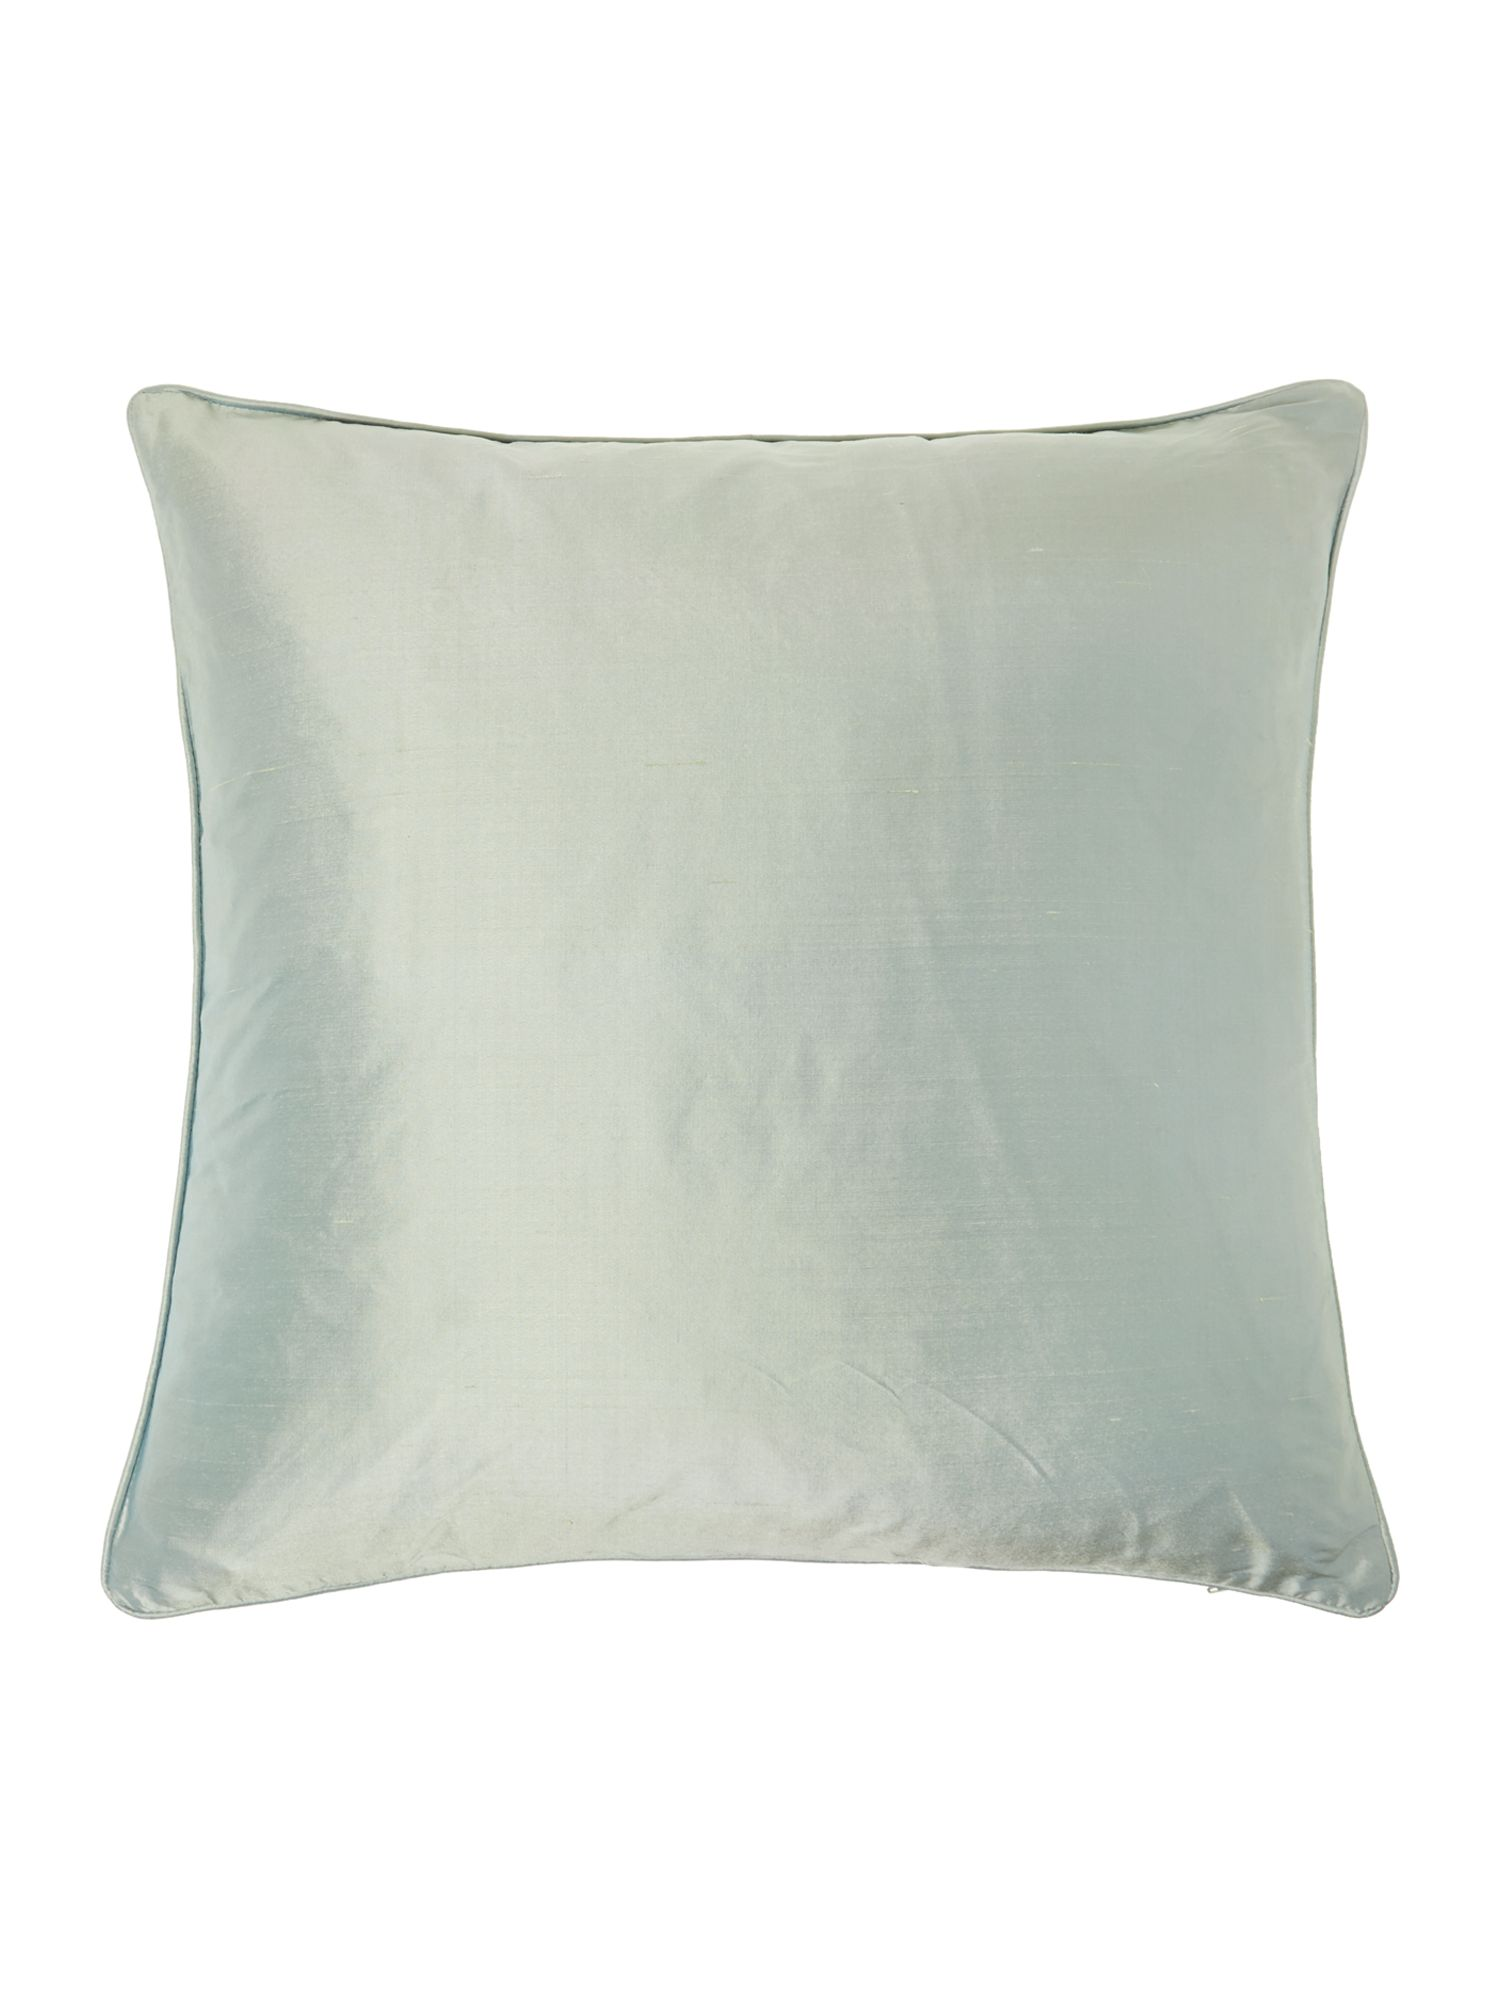 Brockfield cushion in aqua